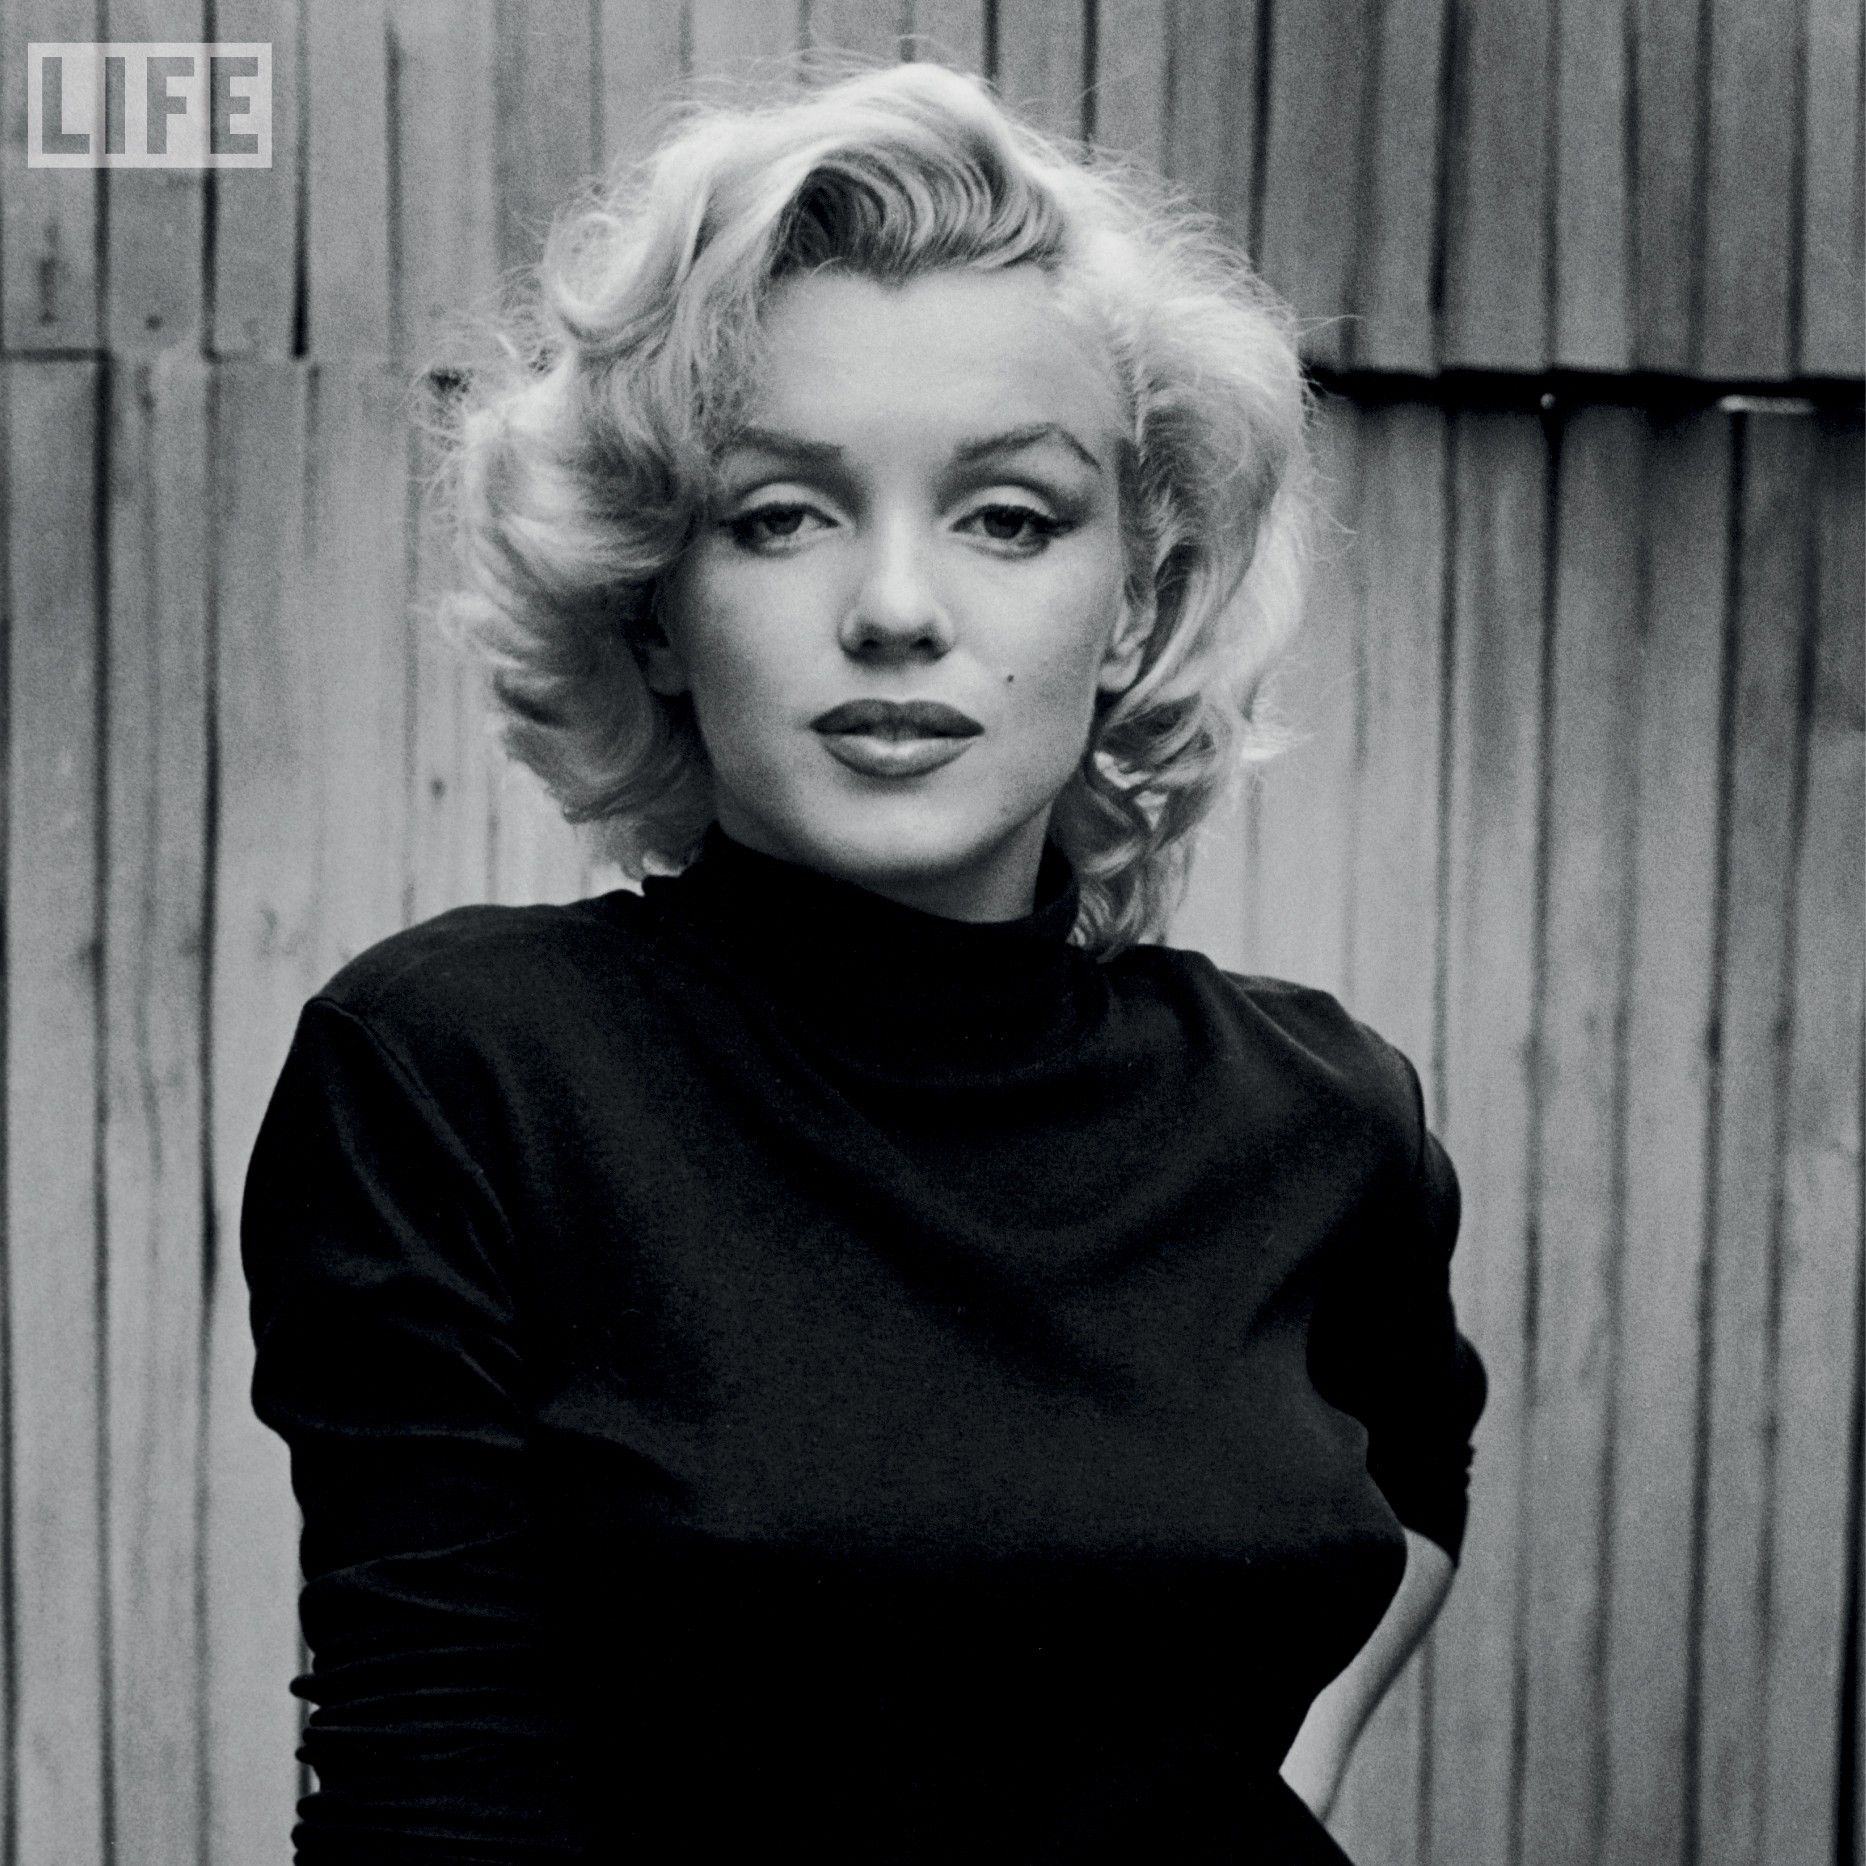 Iconic 1950's Marilyn Monroe black and white photographic portrait .